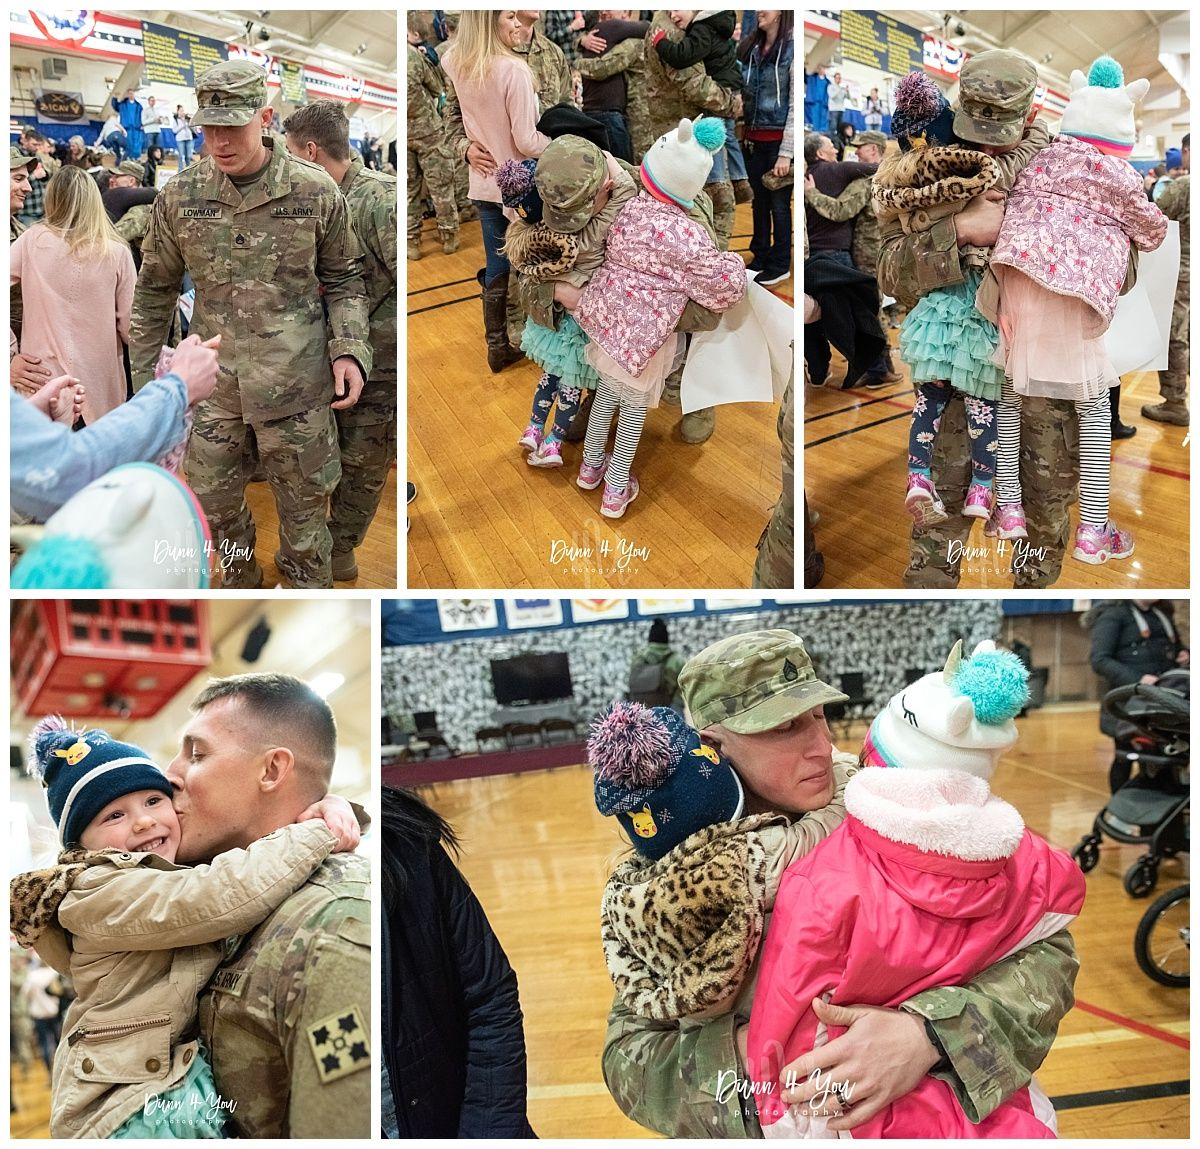 Soldier embraces his children after returning home from deployment